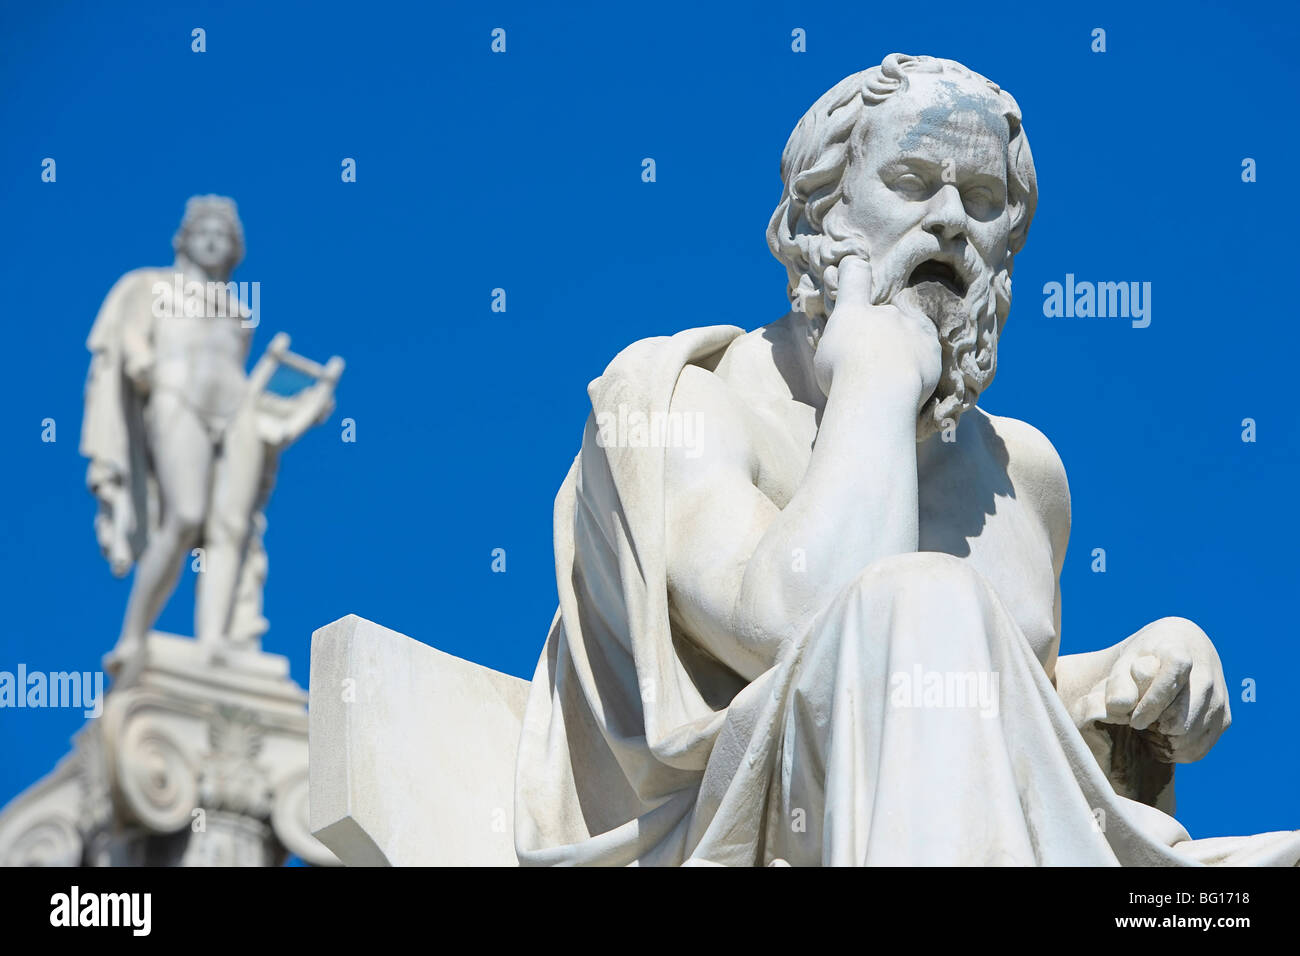 Statues of Socrates and Apollo outside Academy of Athens, Athens, Greece, Europe - Stock Image